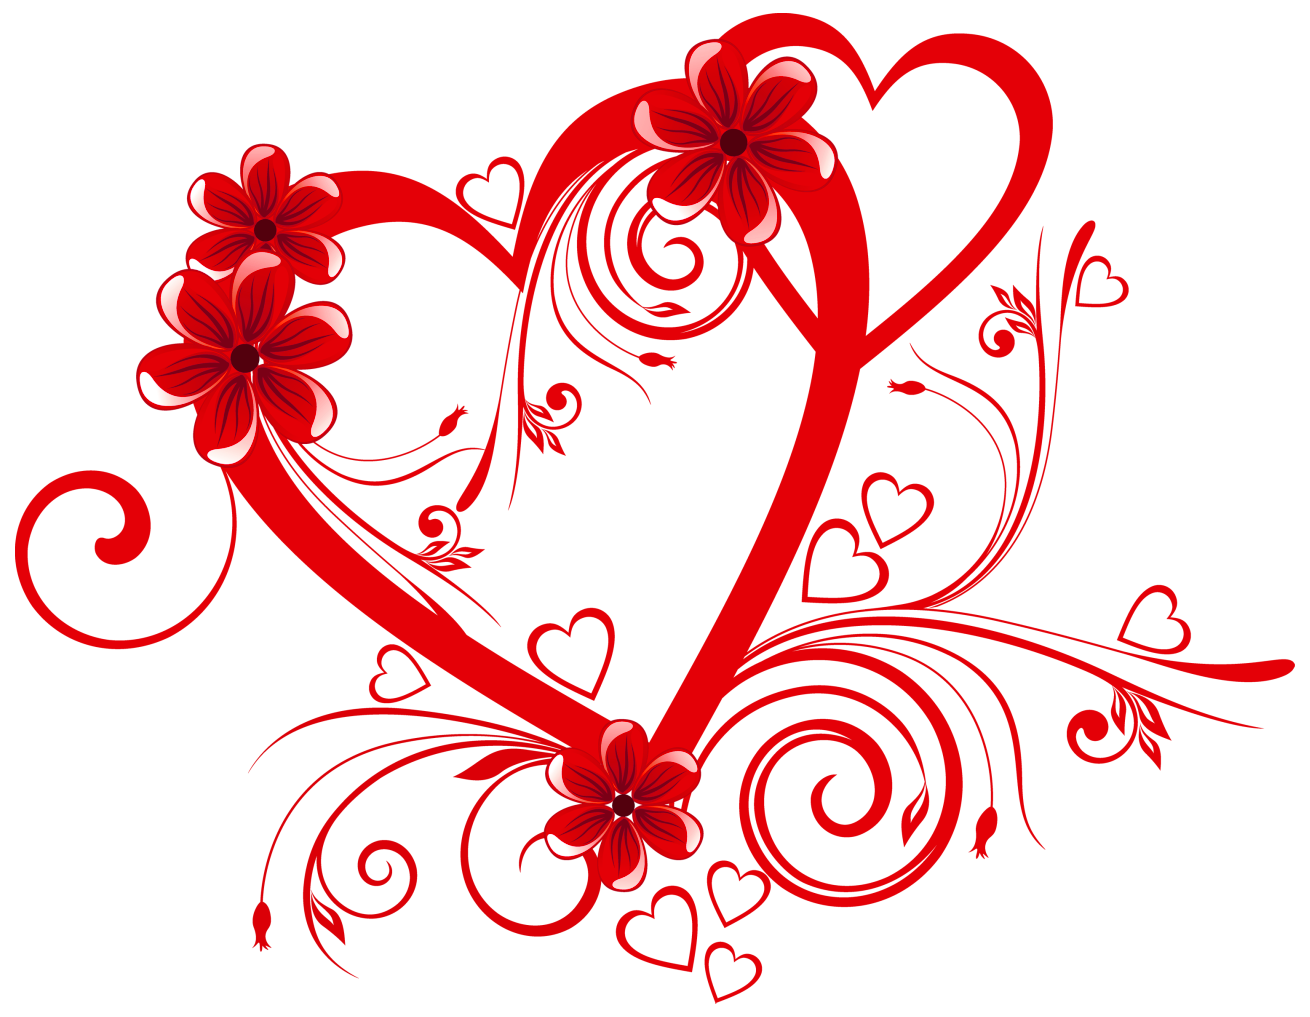 Heart art png. Love photos mart